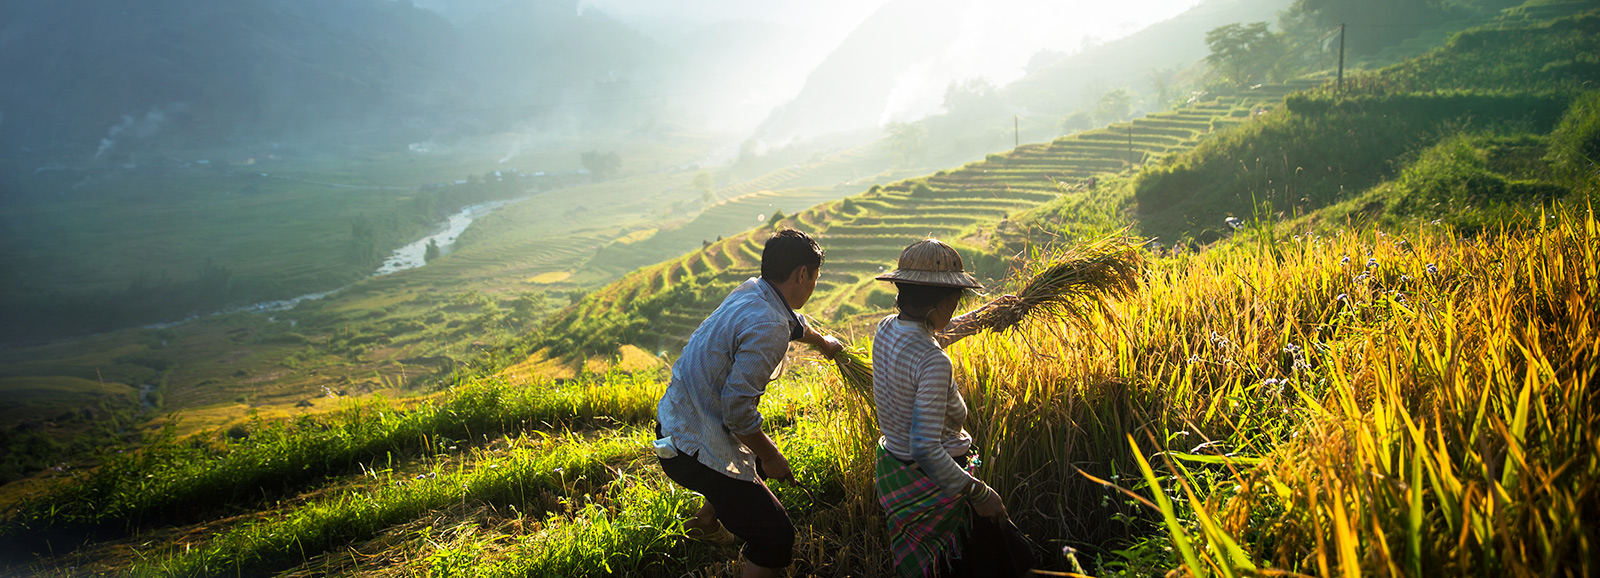 Man and woman harvesting rice in Sapa (Image © Tim Gerard Barker/Getty Images)